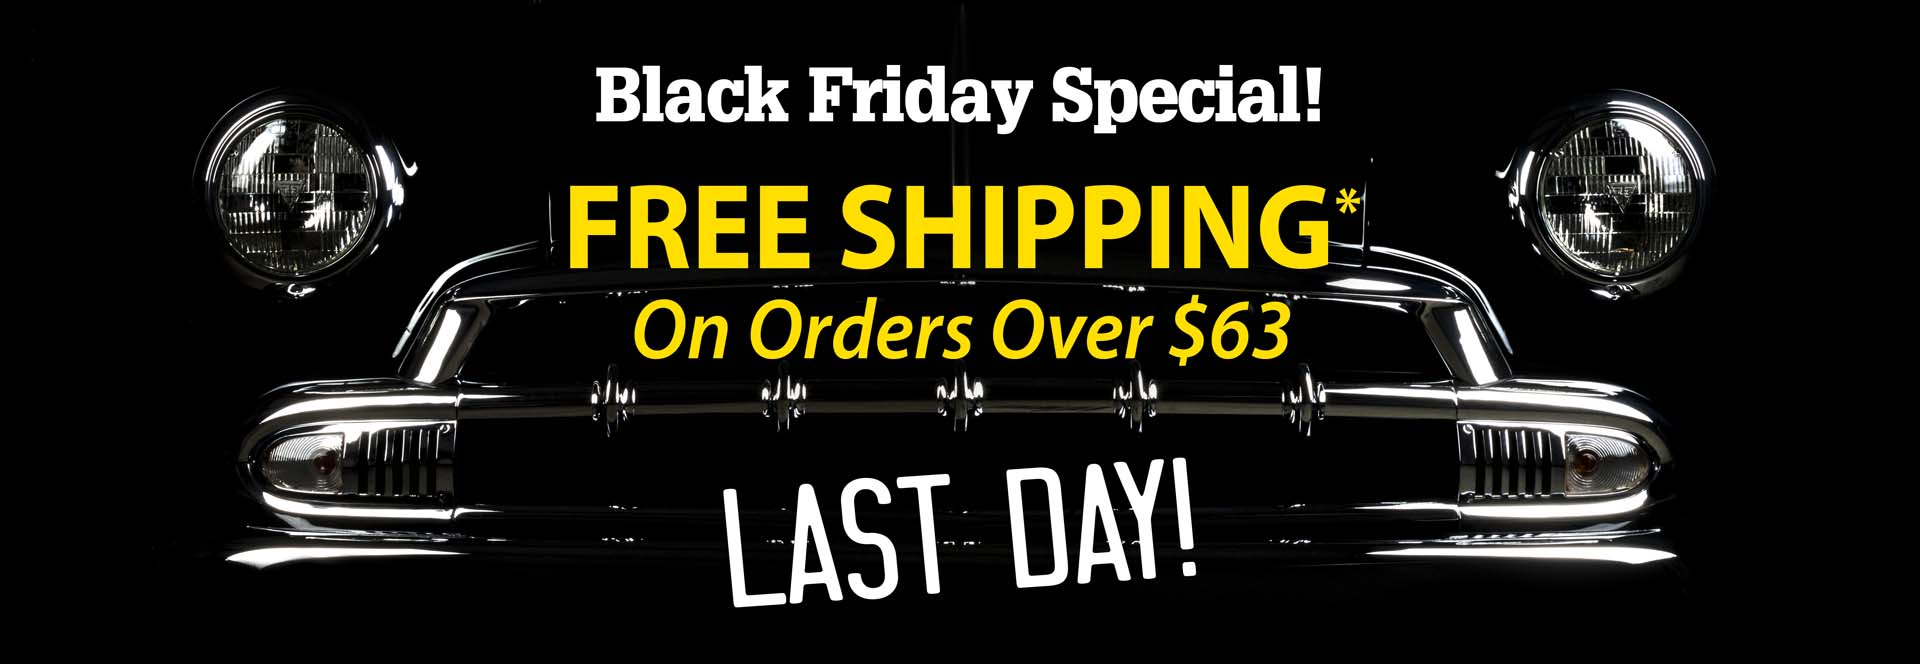 Free Shipping On Purchases Over $63